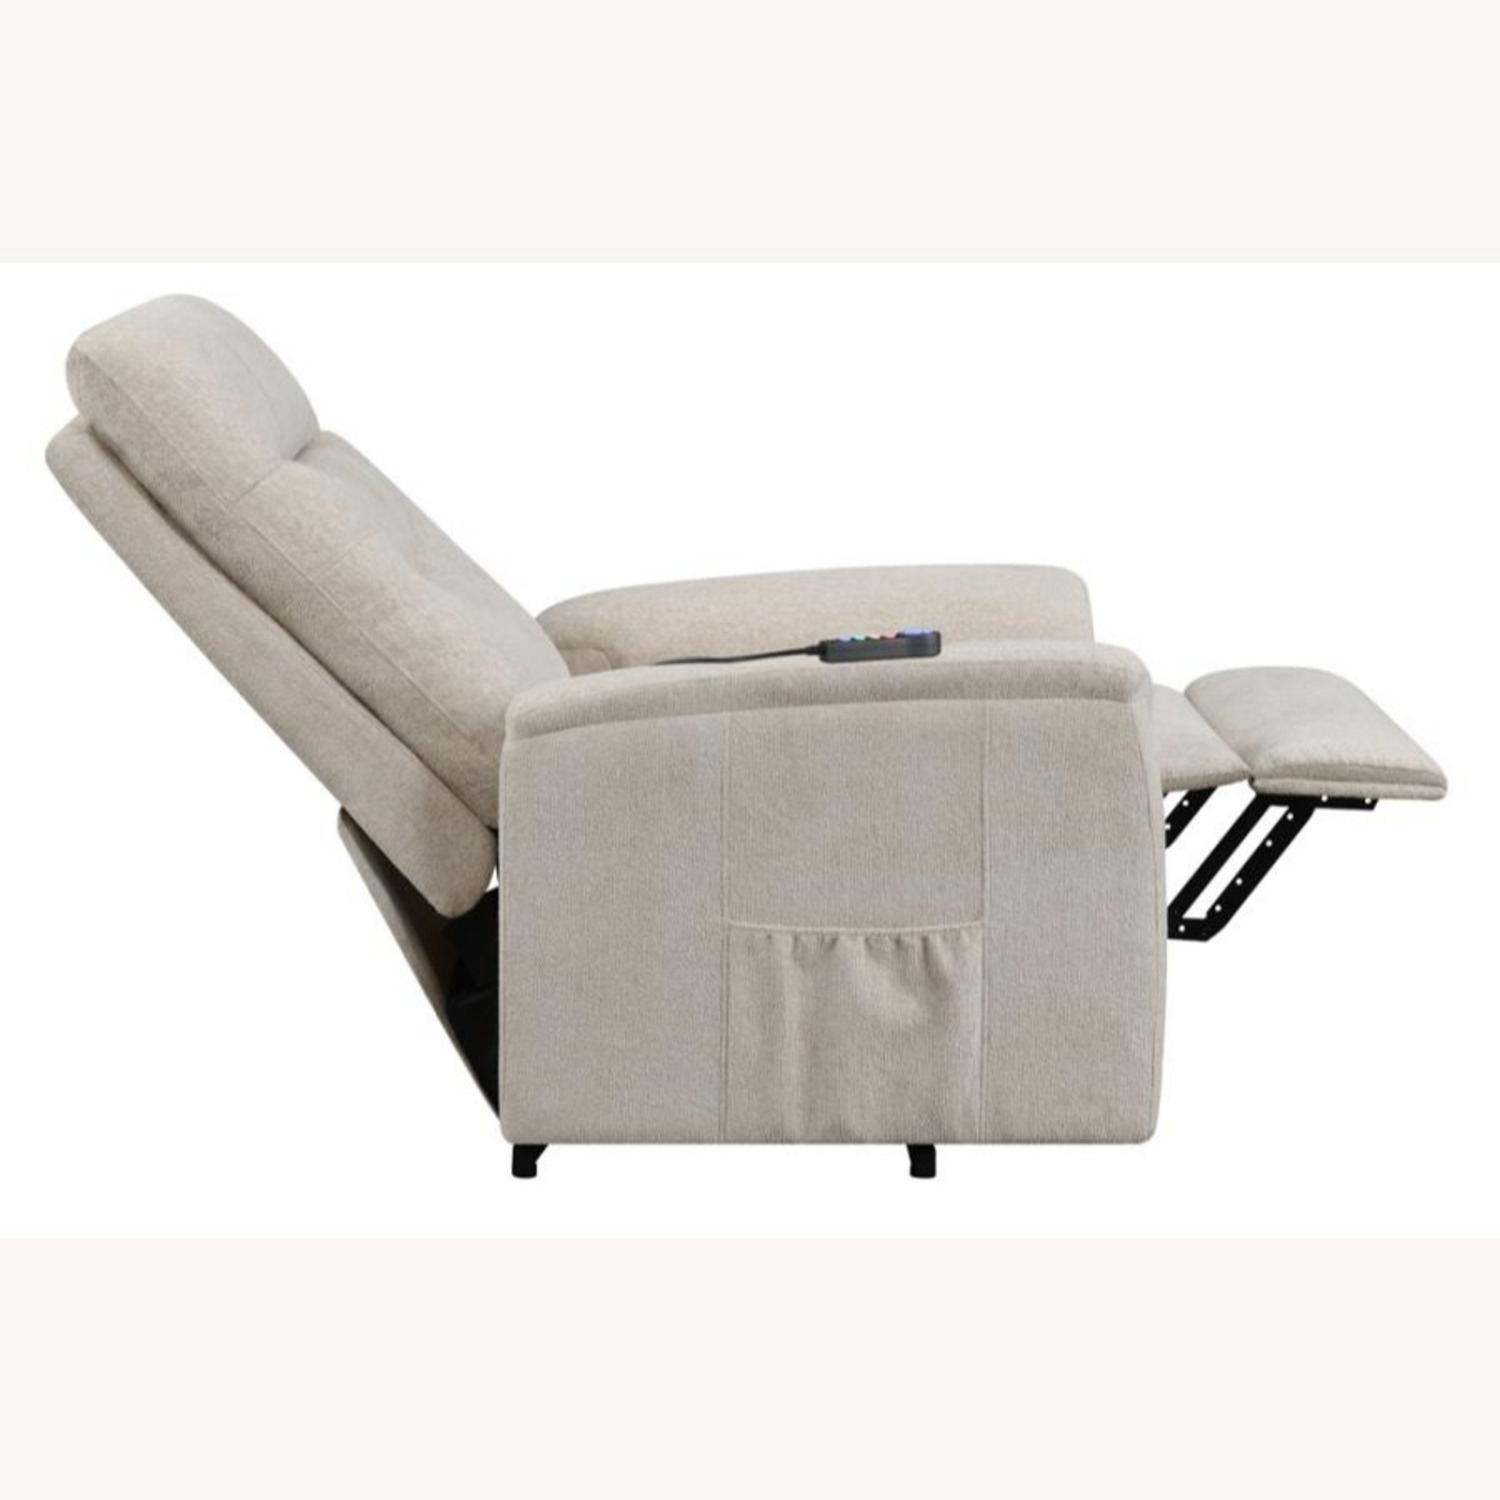 Power Lift Massage Chair In Beige Fabric - image-4